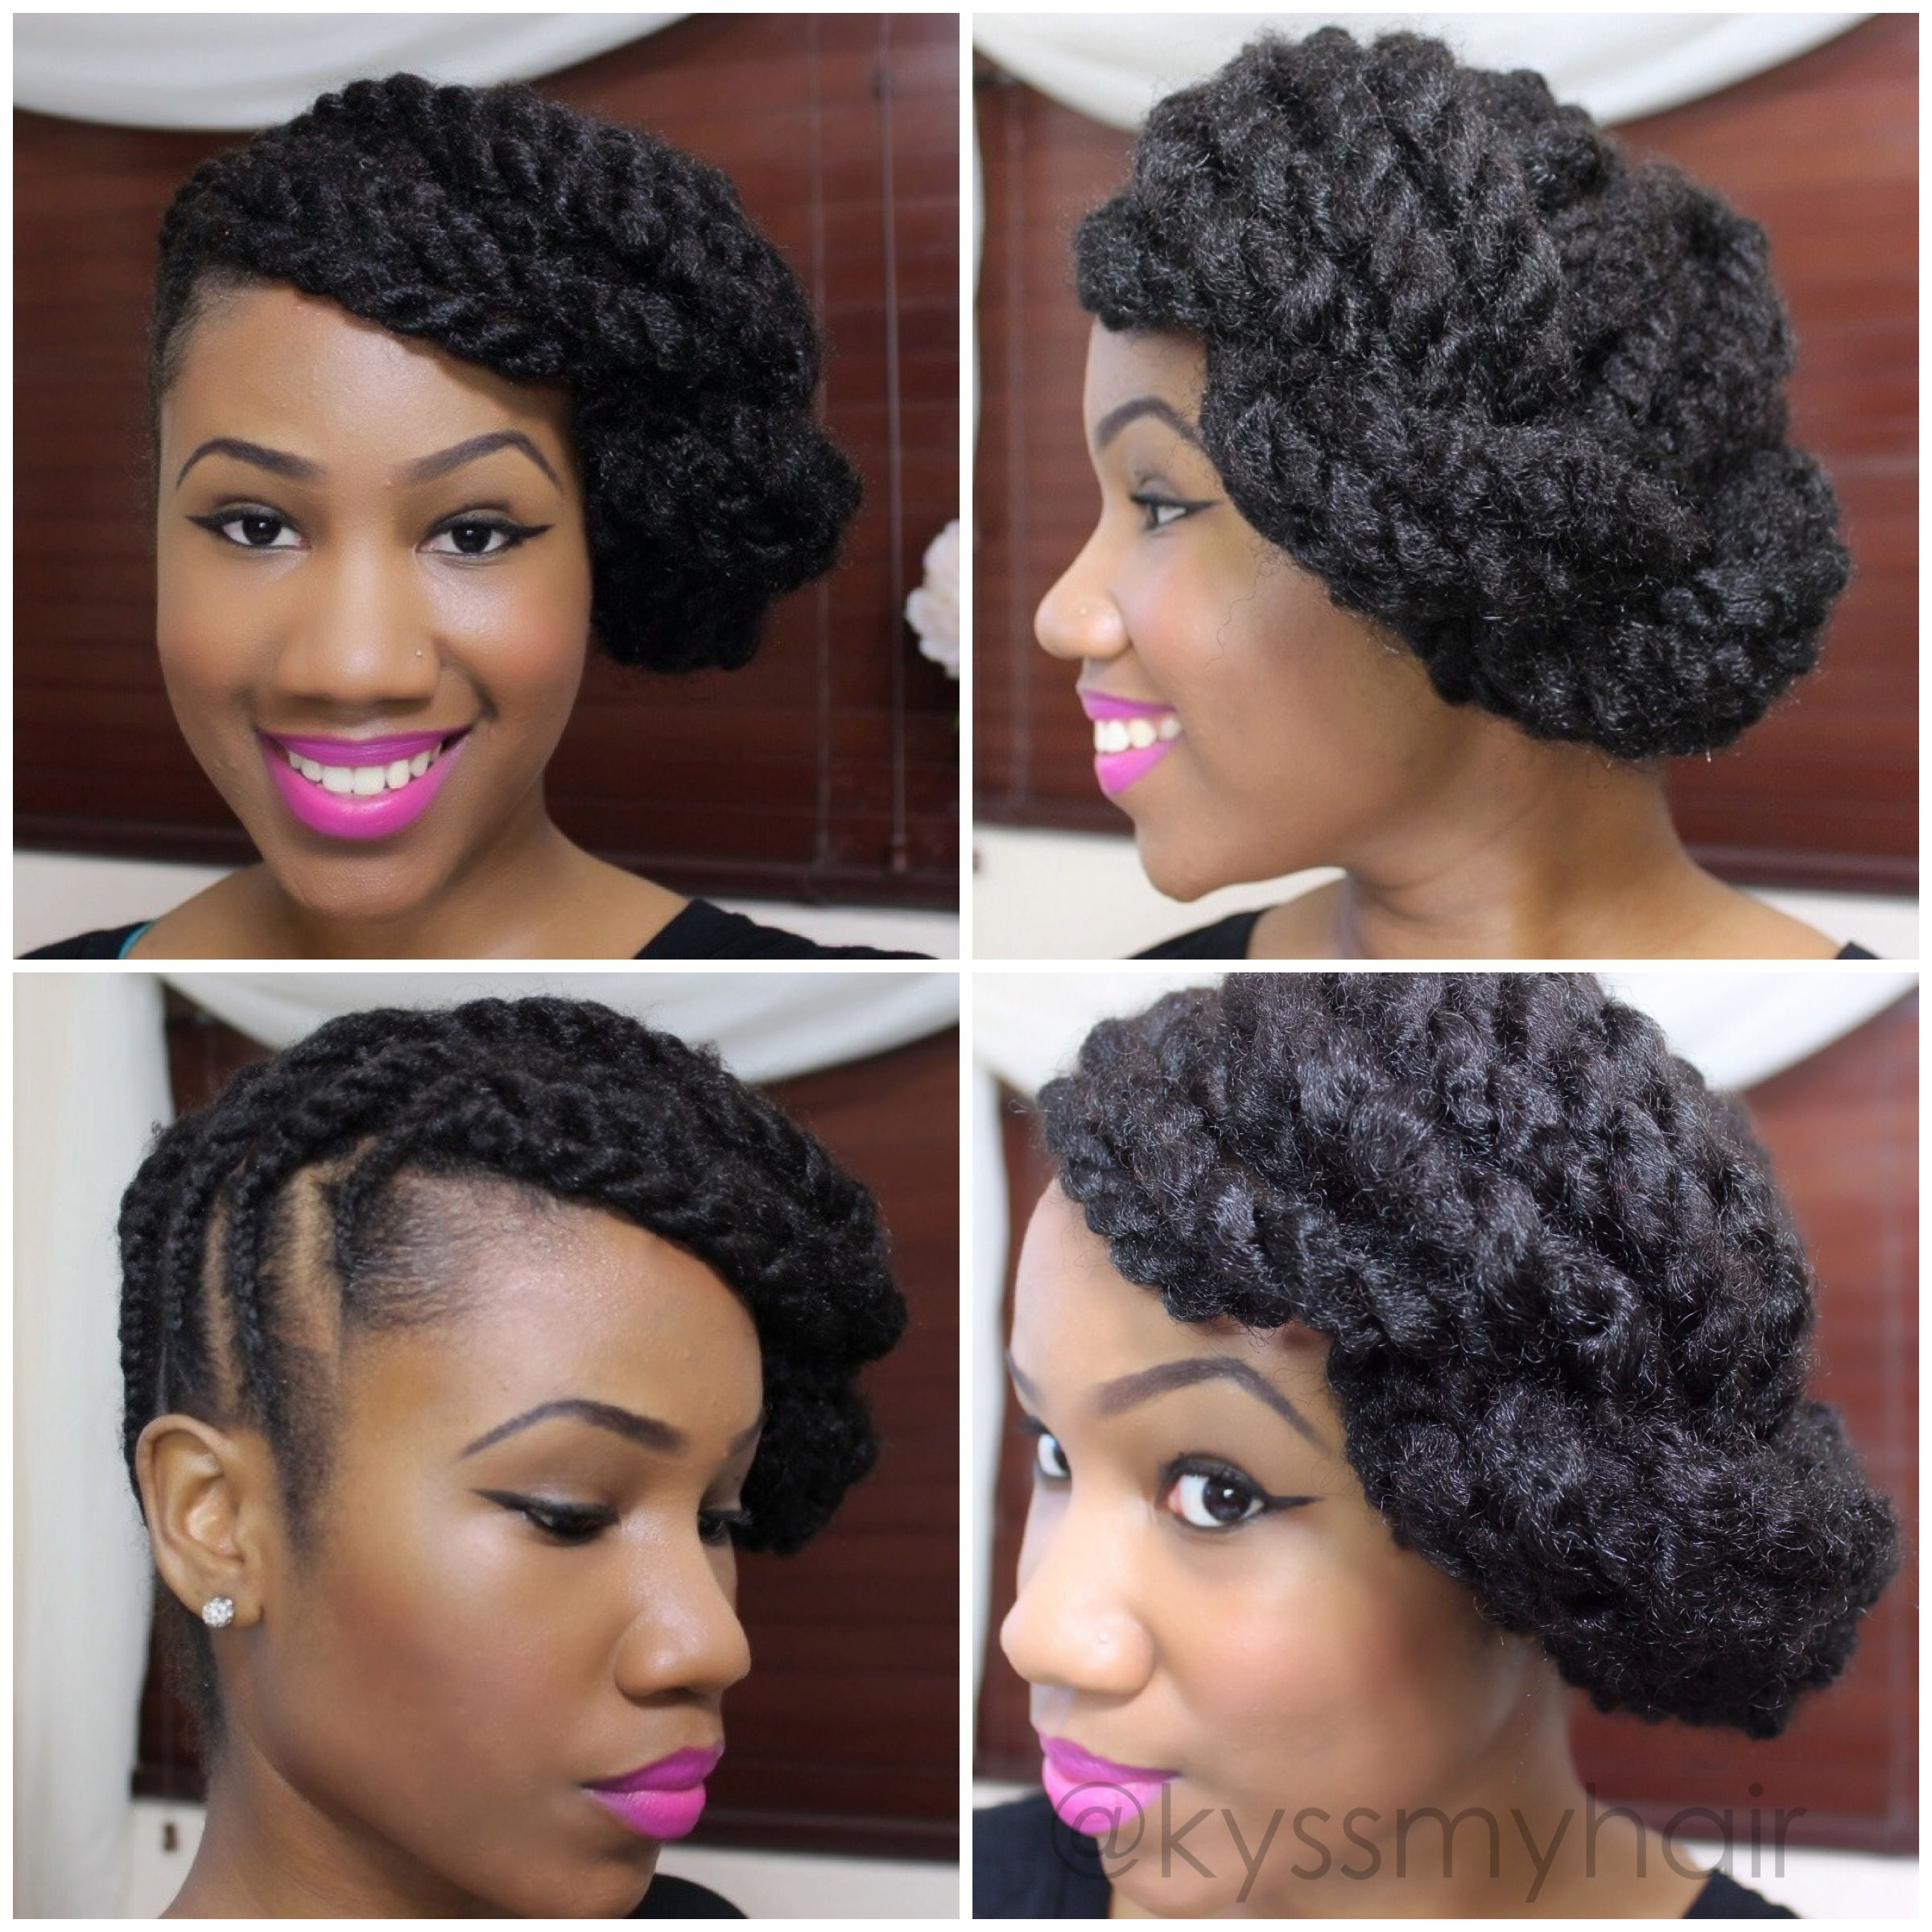 Astonishing 1000 Images About Braids Updos On Pinterest Cornrow Protective Short Hairstyles Gunalazisus